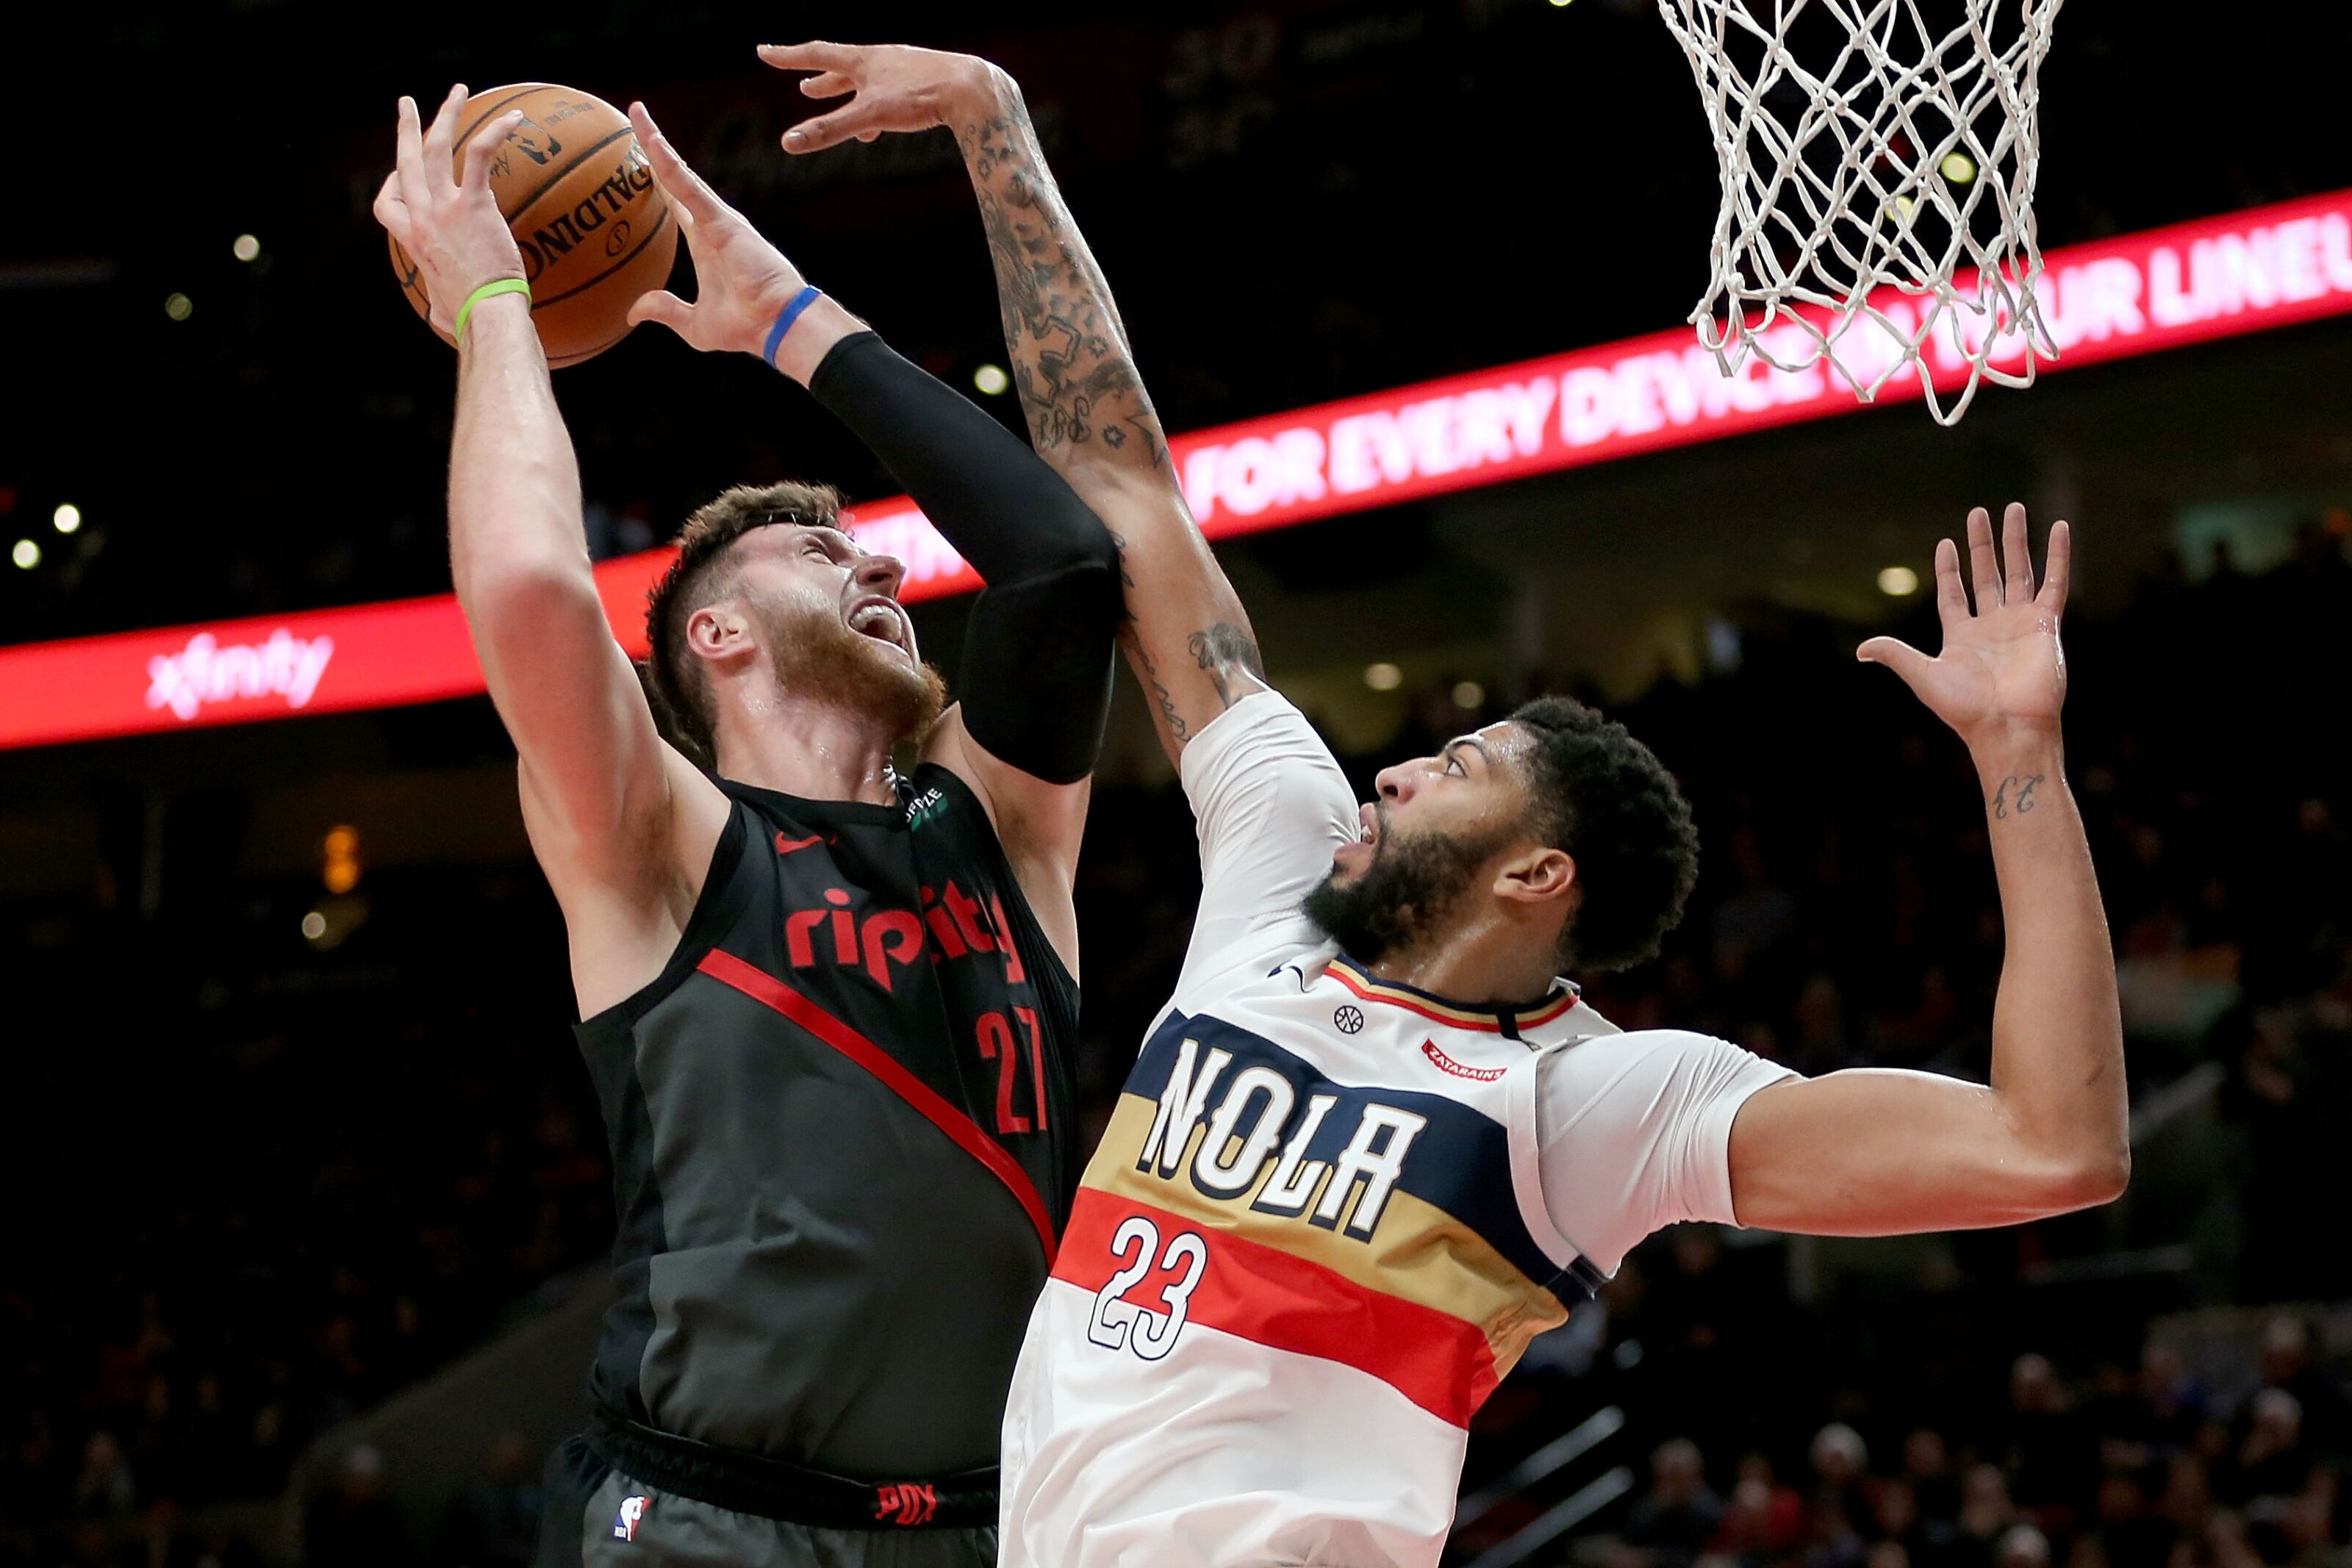 Trailblazers' potential in a three team Anthony Davis trade with Pelicans